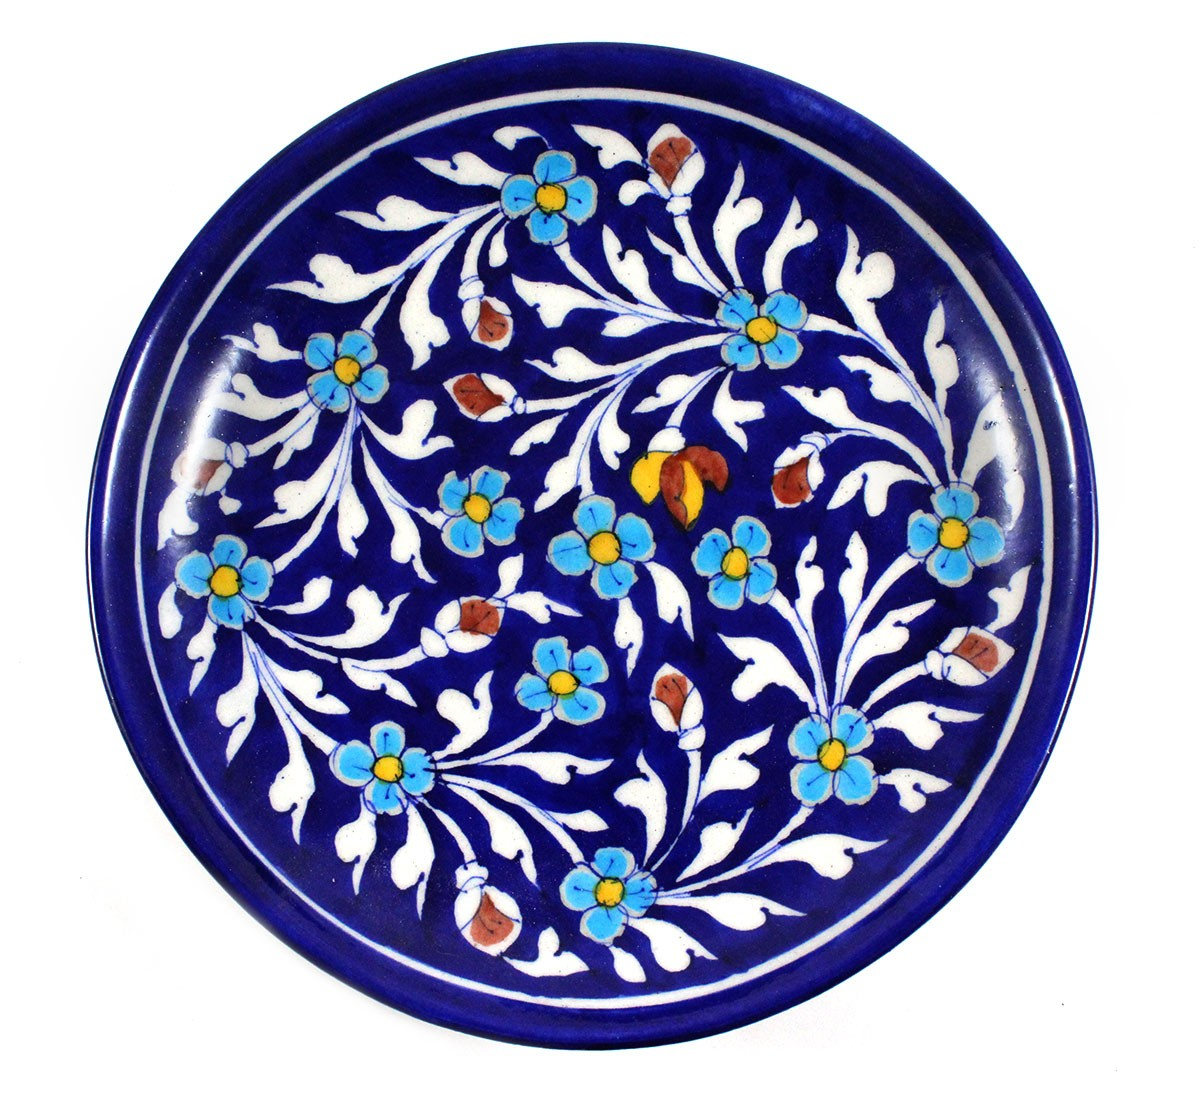 Blue Decorative Wall Plates Cool Buy Classy Blue And Light Blue Decorative Wall Art Plates 2 Decorating Design